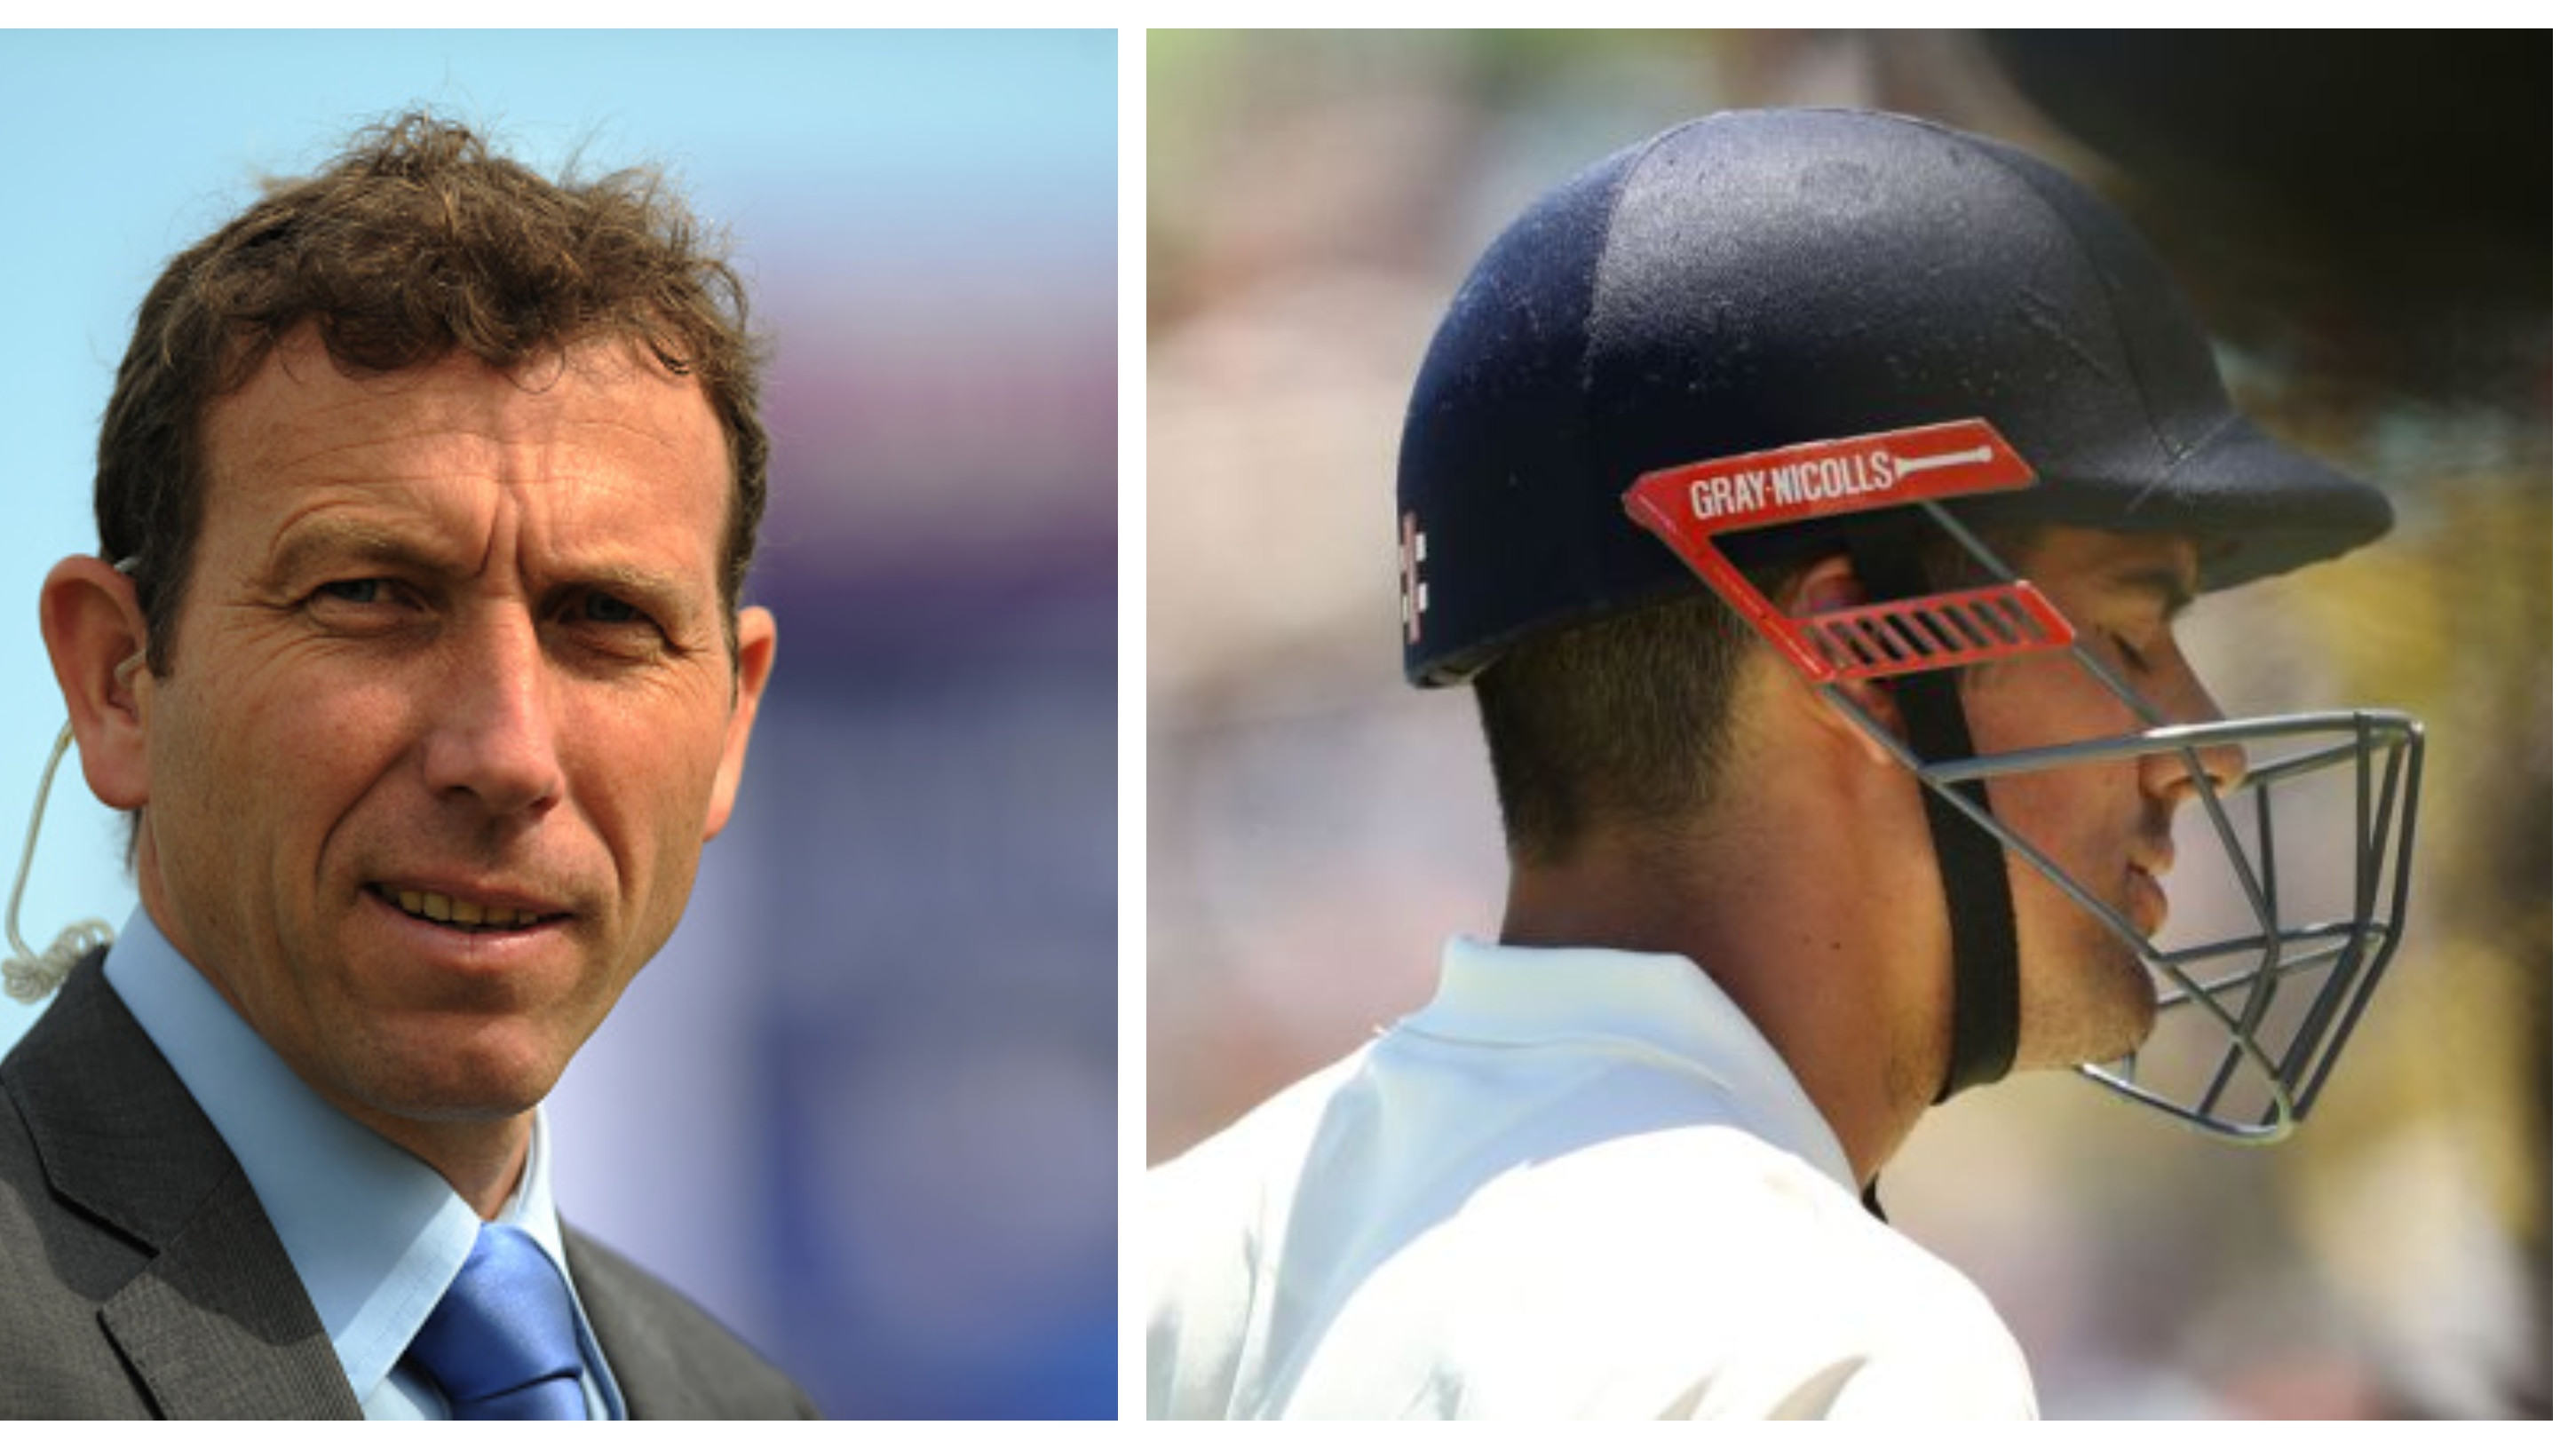 ENG vs IND 2018: Michael Atherton criticizes Alastair Cook for his poor run in the series